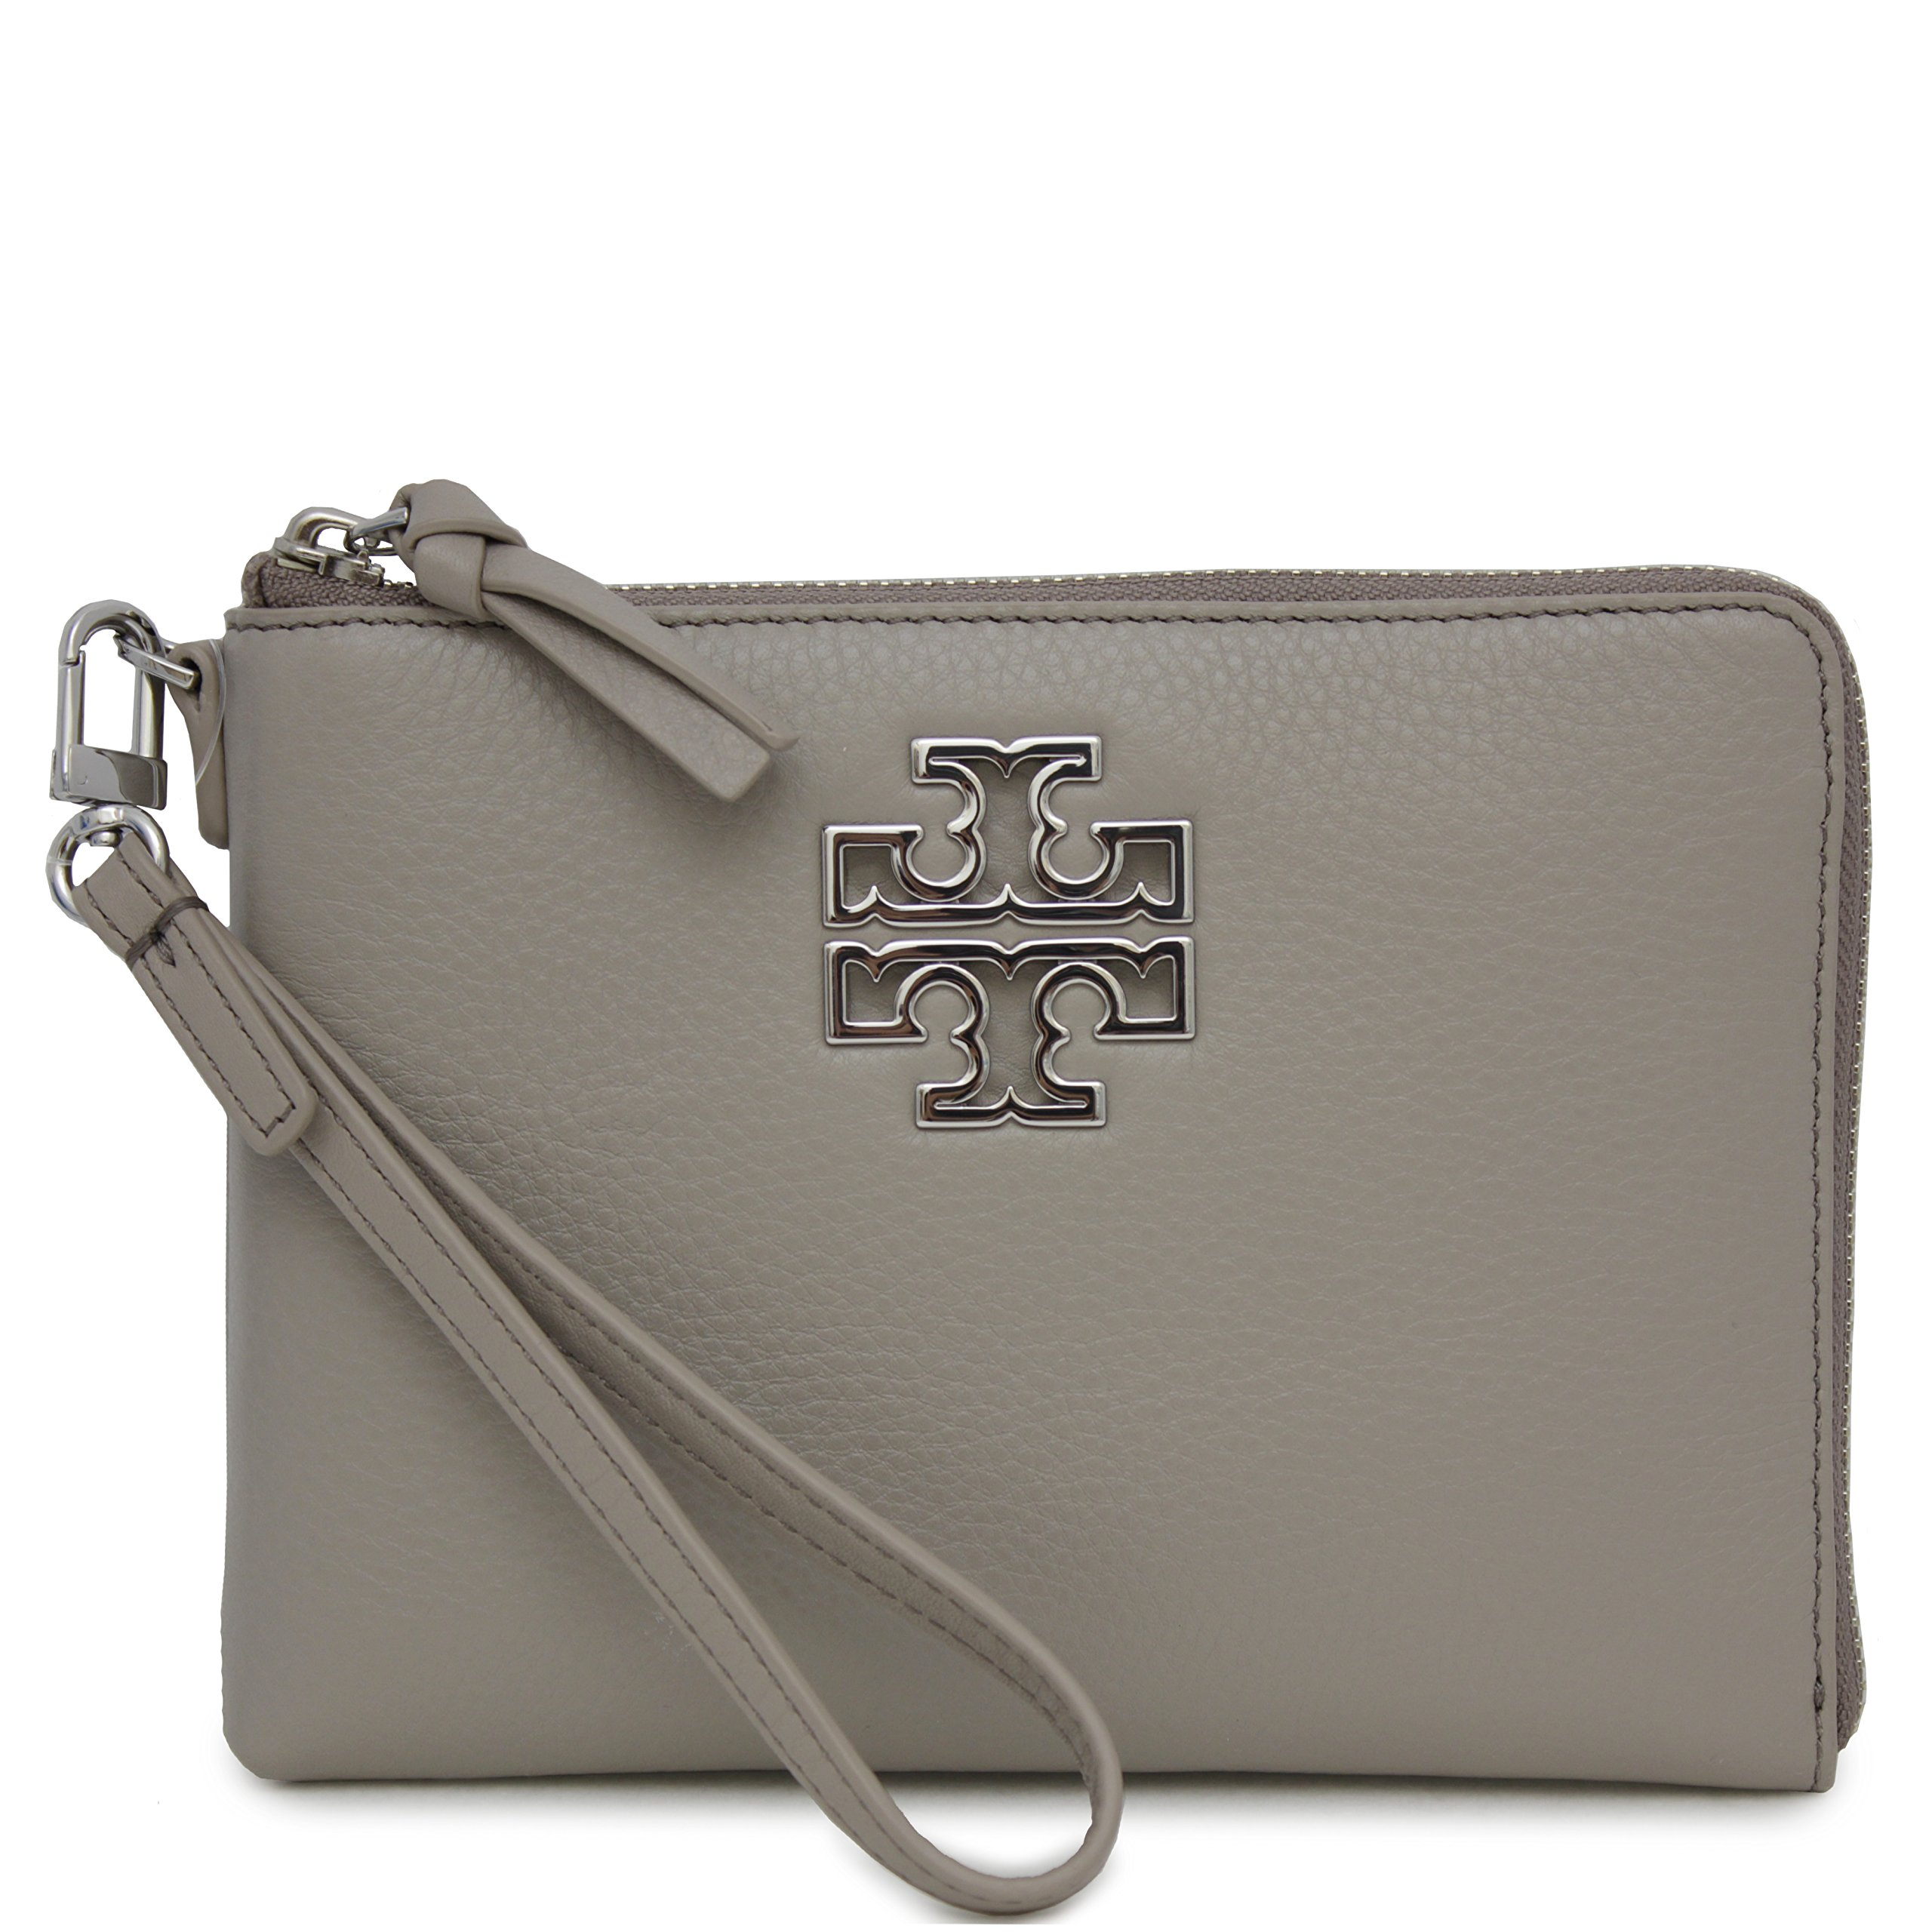 Tory Burch Britten Large Pebbled Leather Zip Pouch Wristlet (French Gray) by Tory Burch